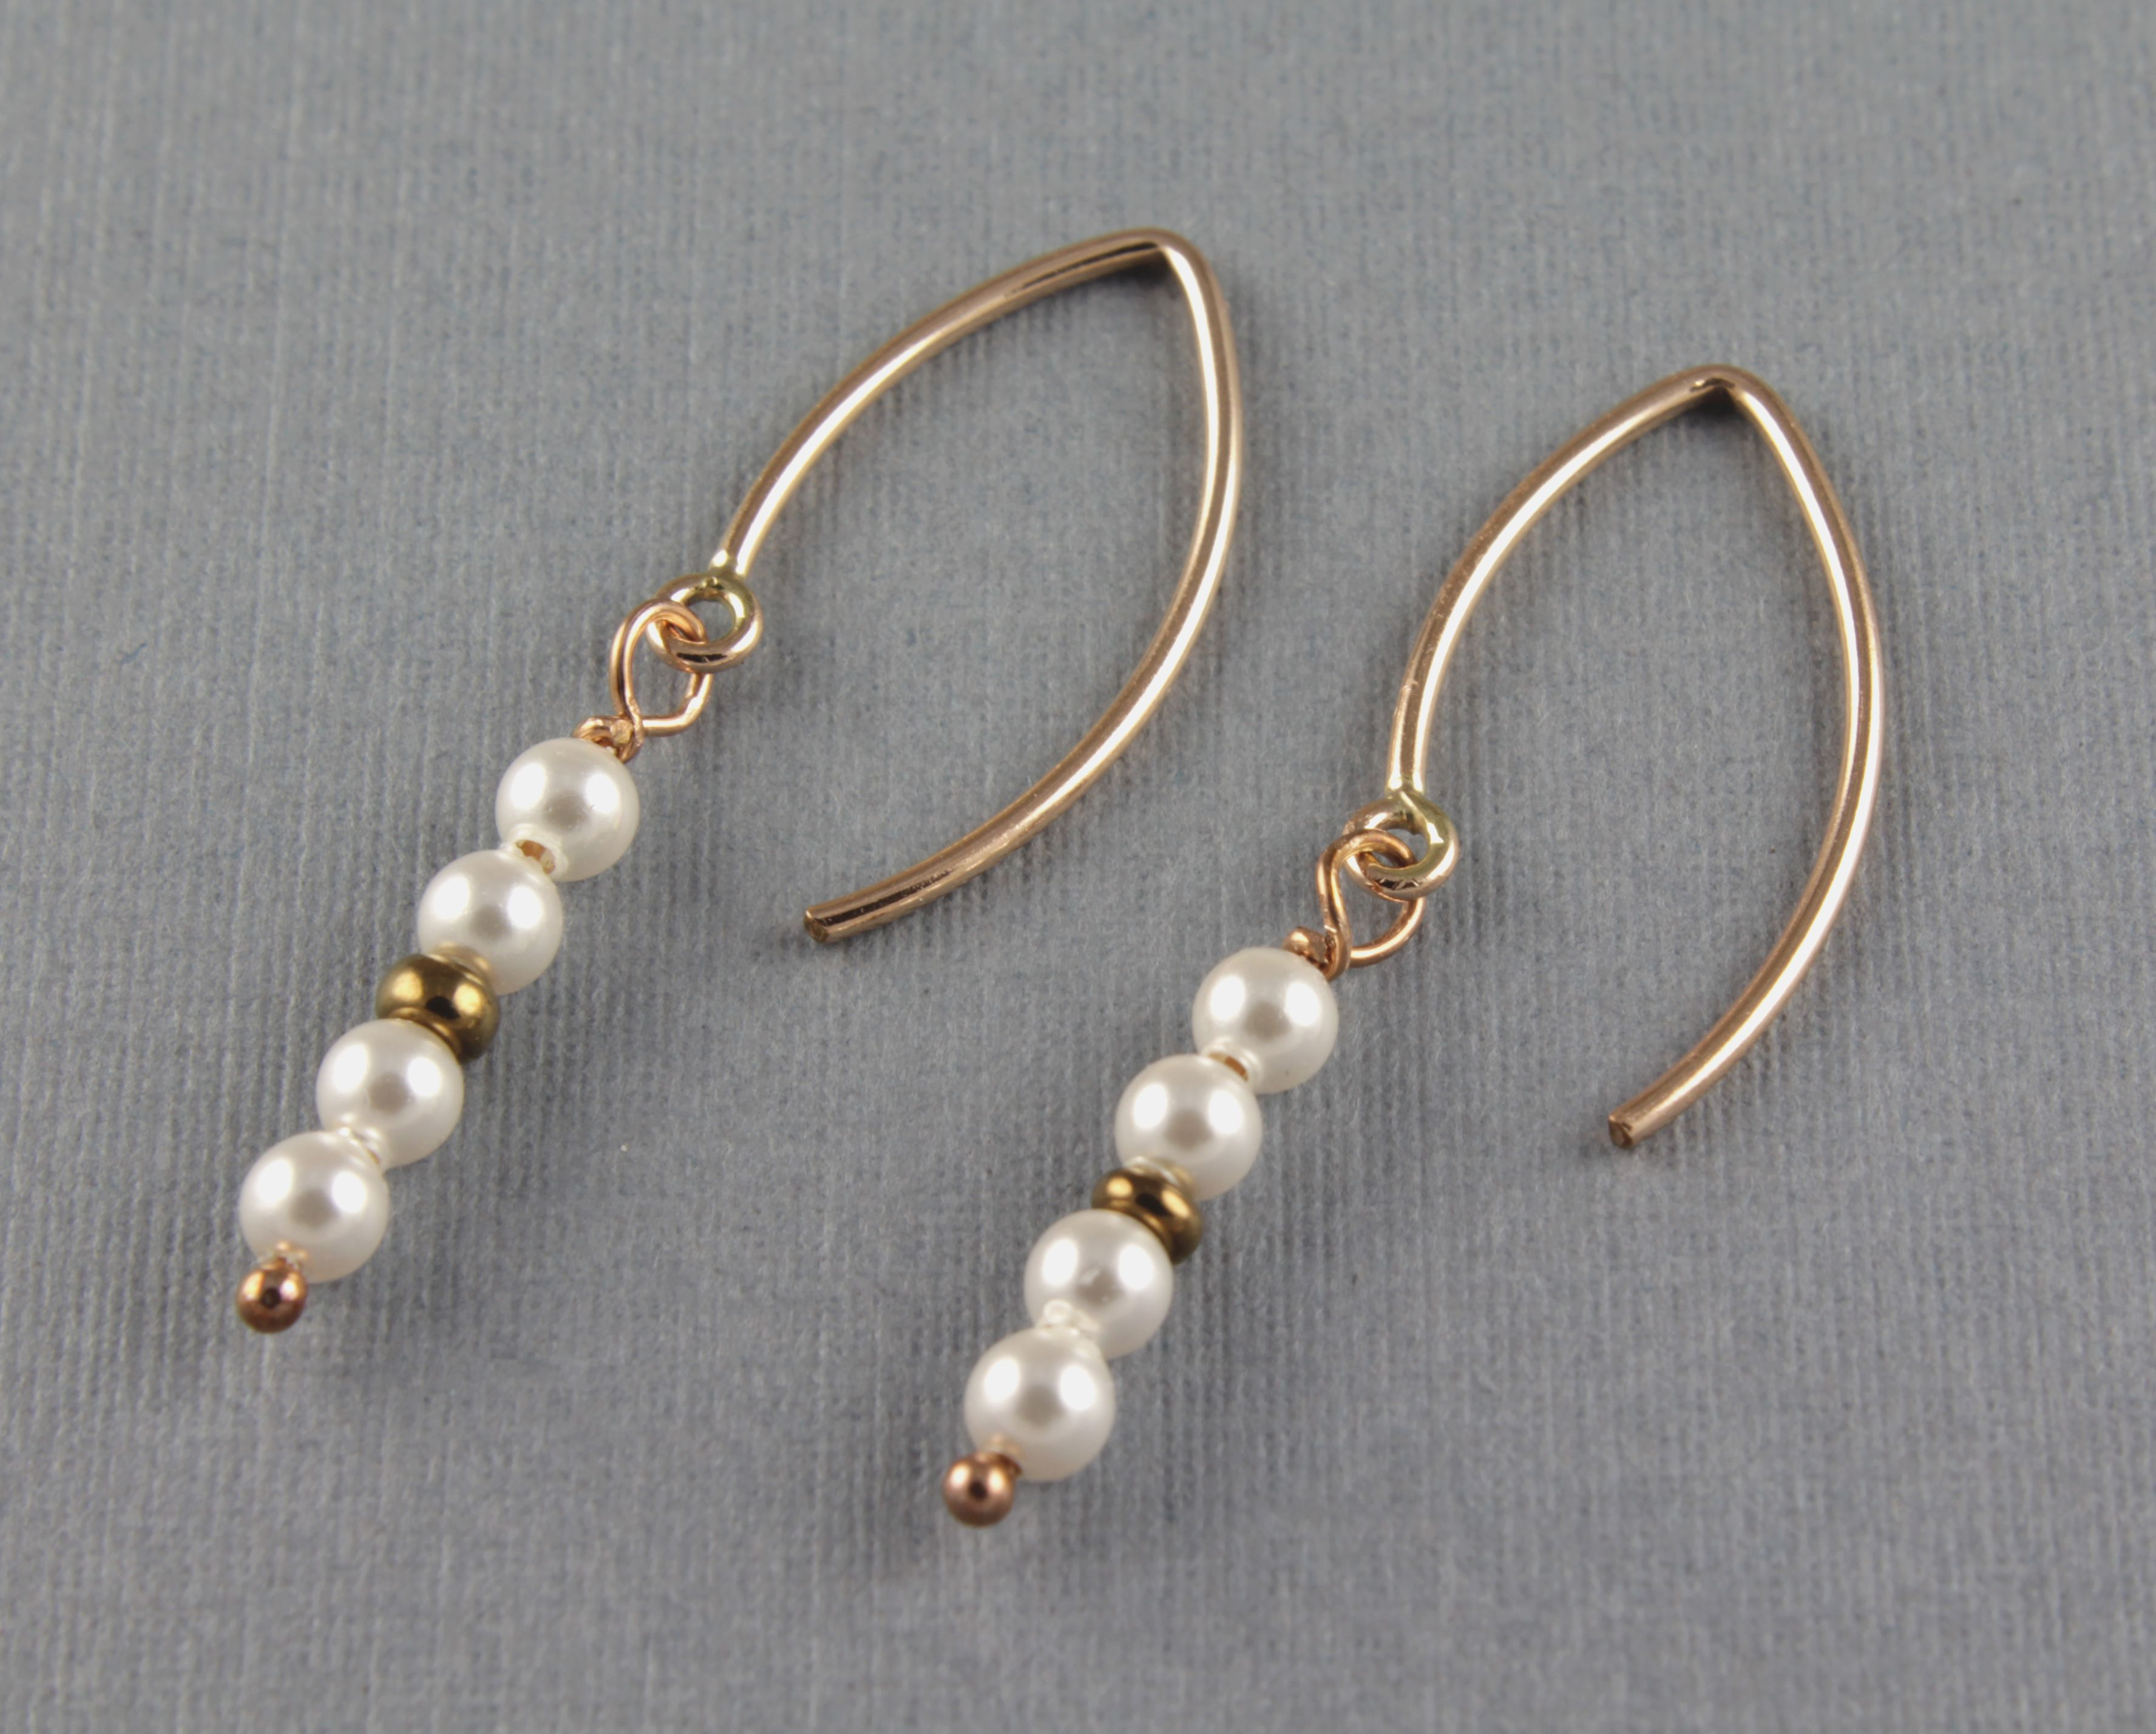 Delicate White Pearls Dangle Earrings The simplicity of these